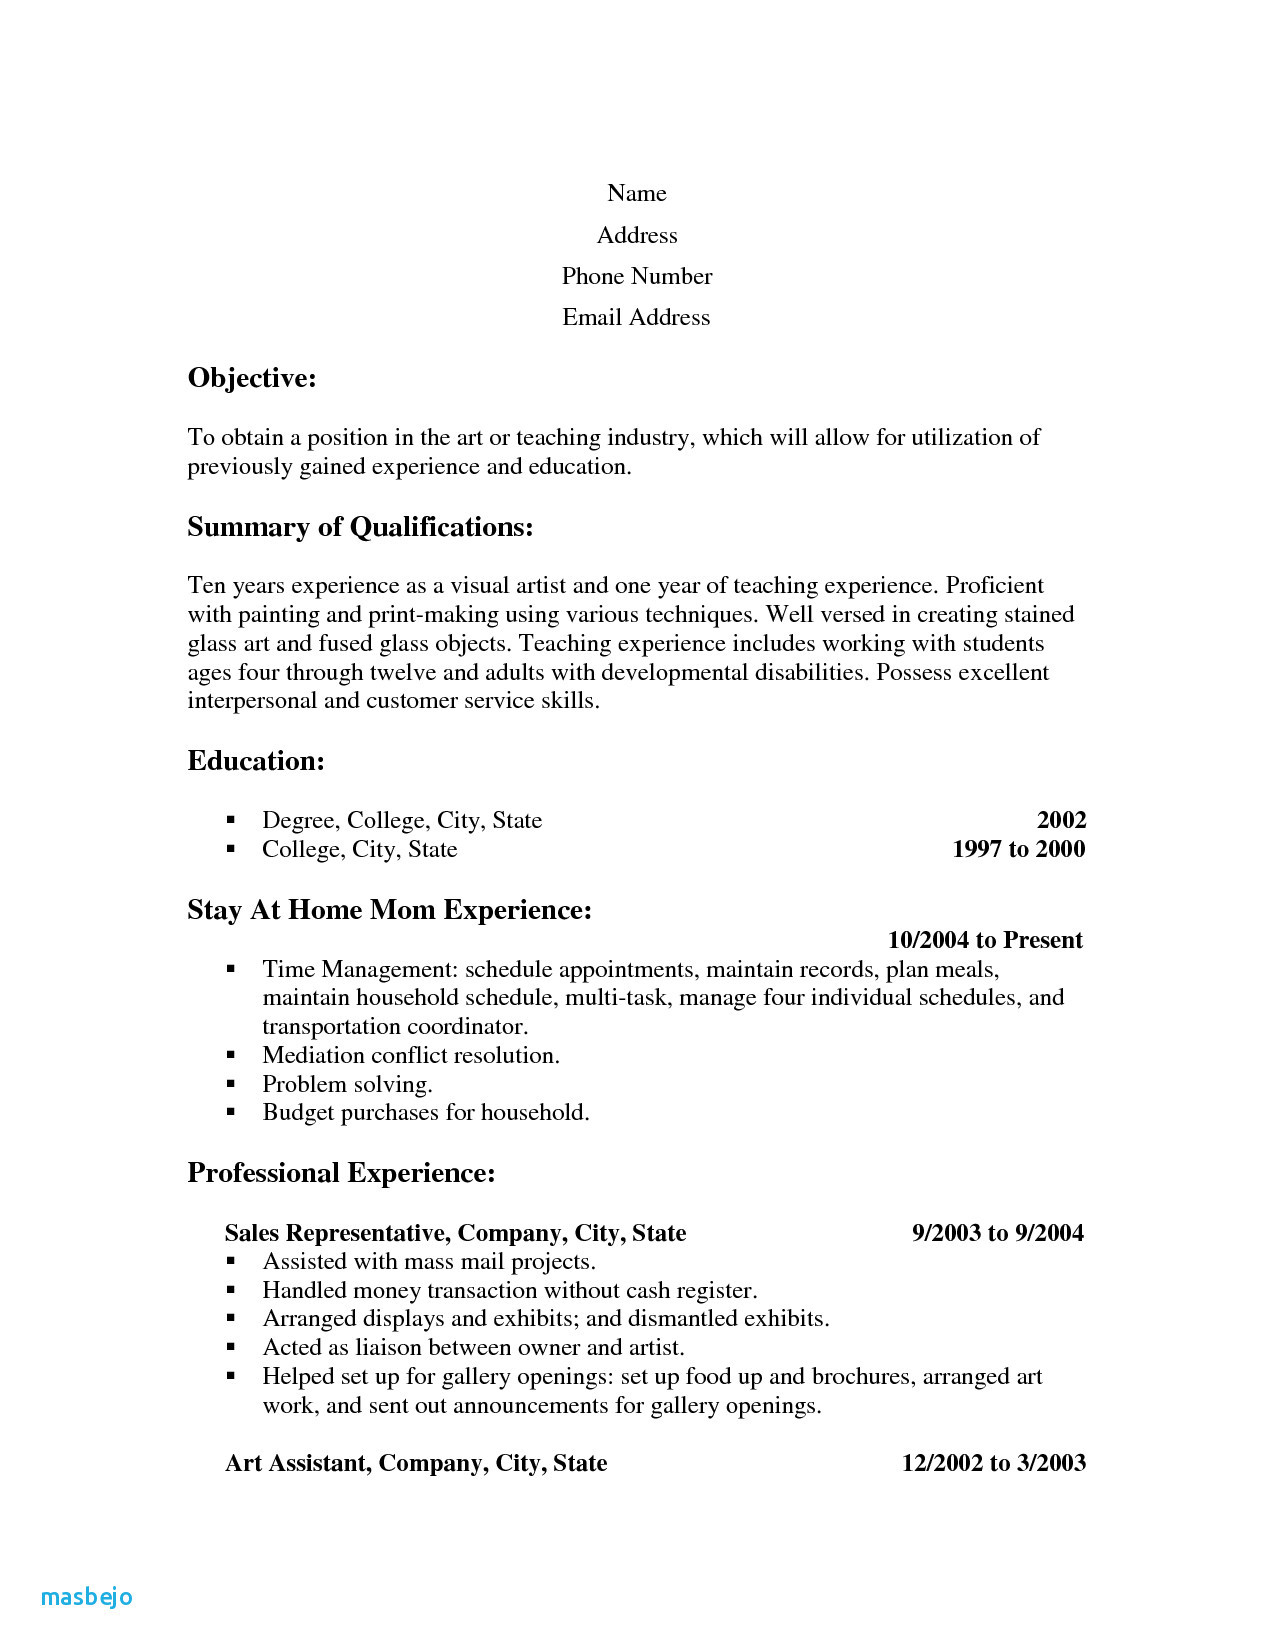 Resume Builder for Stay at Home Mom - Stay at Home Mom Resume Template Unique Stay at Home Mom Resume